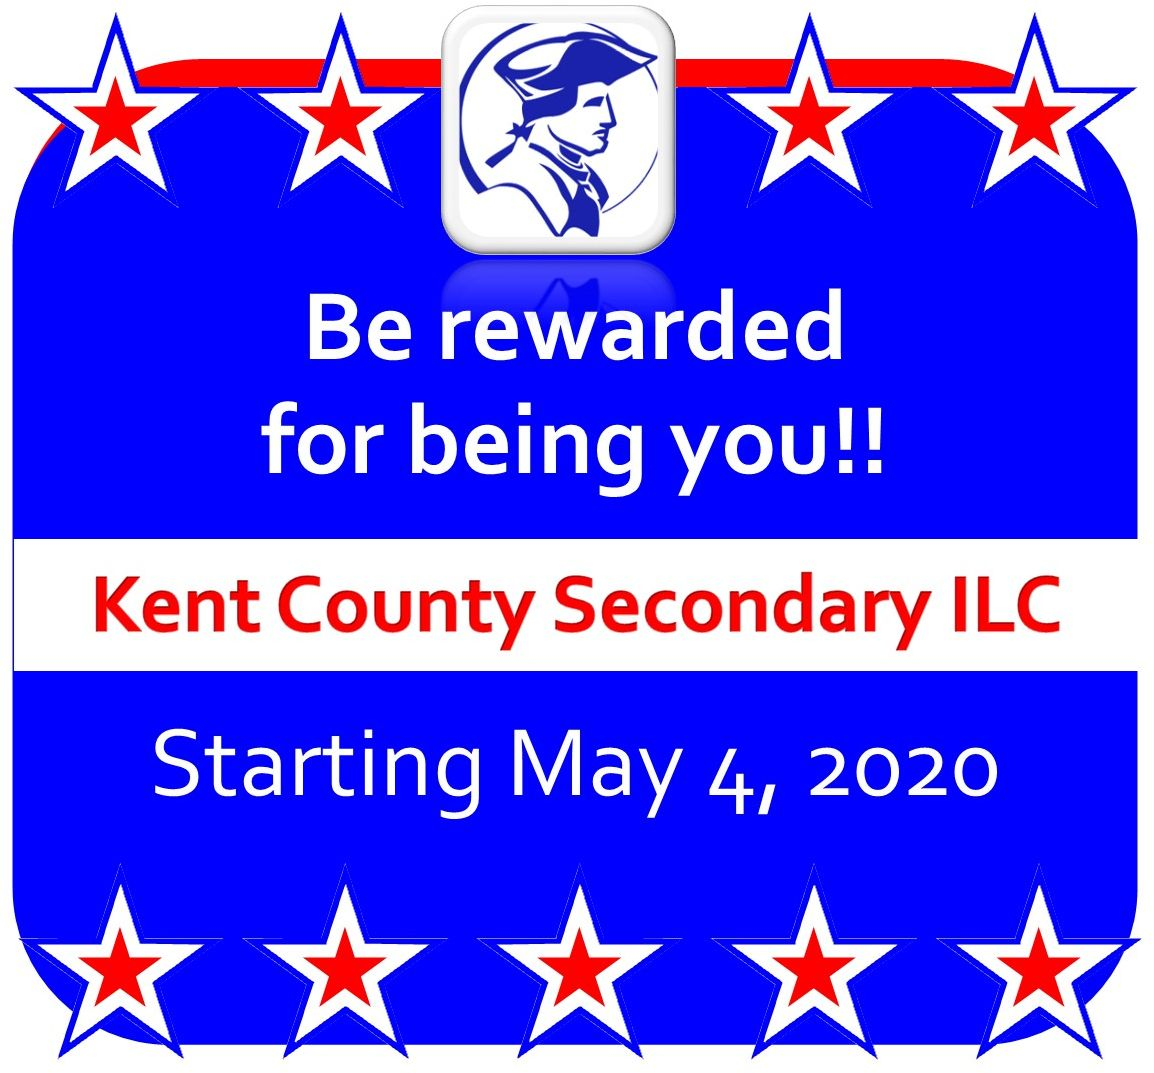 Hey KCSILC students!  Are you ready to earn some PBIS Rewards?  To learn more about how you can win, please be sure to check out Schoology, Edmentum or ask your teachers! #SenatorsCare #SenatorsLearn #TeamKCSILC #BeRewarded https://t.co/EdWAdSUwsY